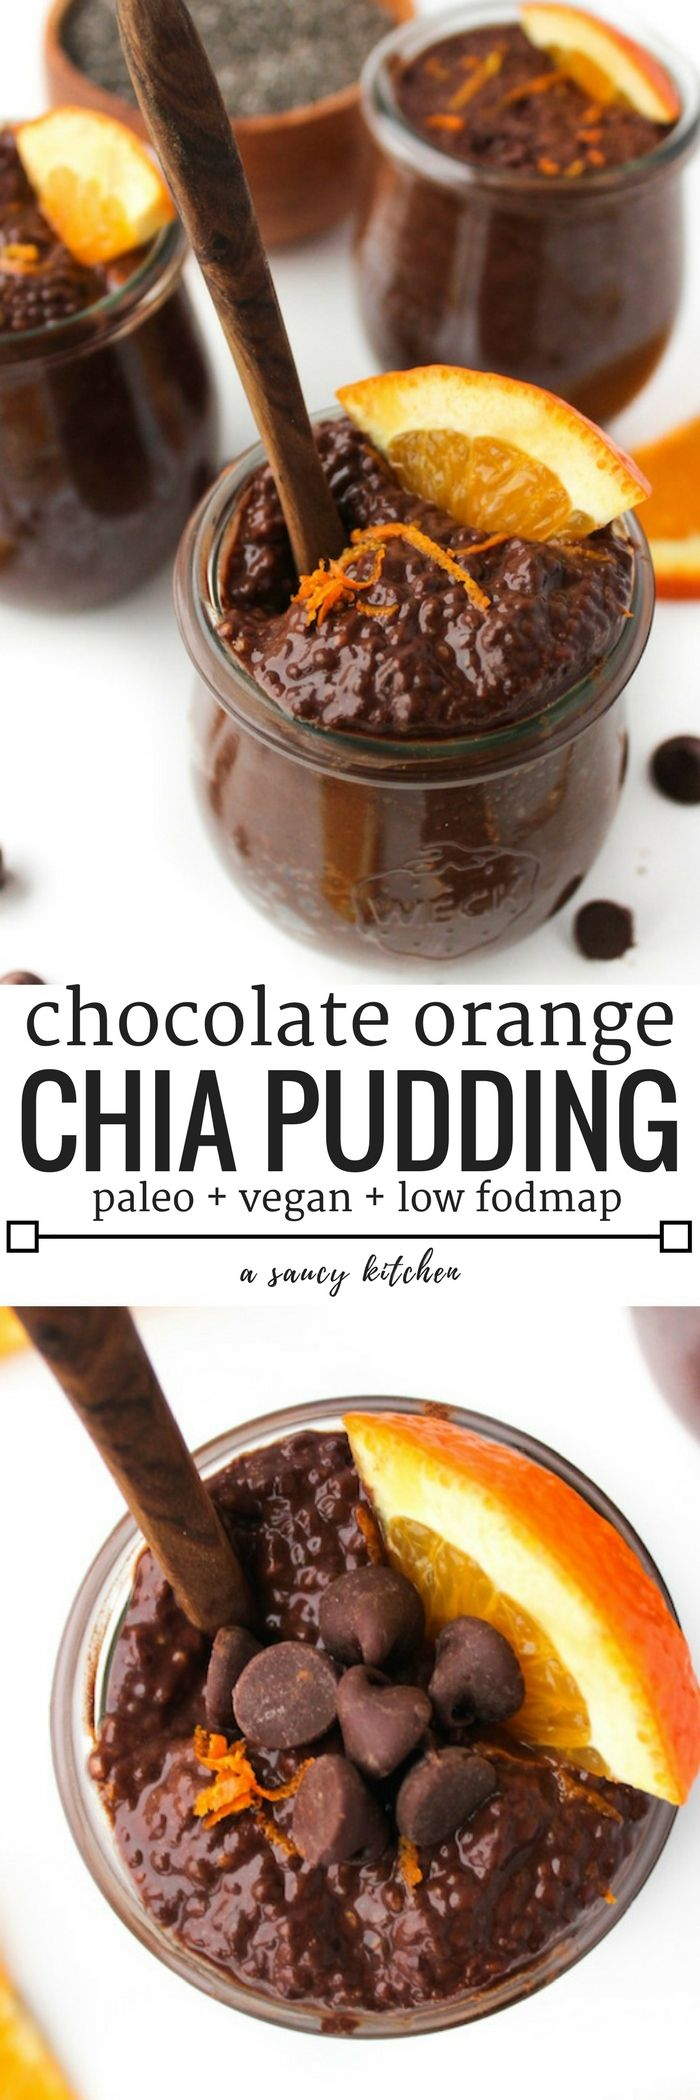 Chocolate Orange Chia Pudding | whipped together in a pinch and is perfect for breakfast and dessert alike. | Paleo, Vegan, Low FODMAP